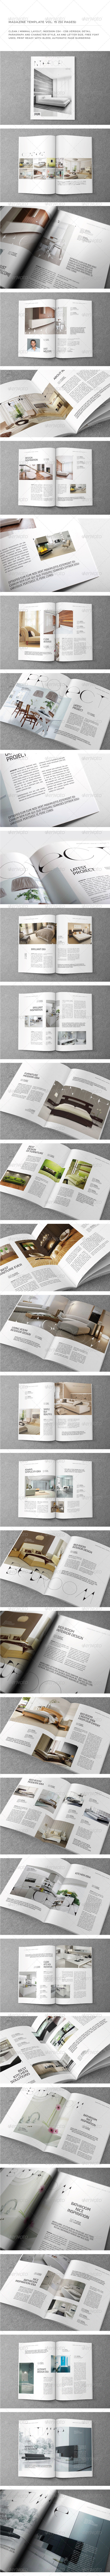 GraphicRiver InDesign Magazine Template Vol 15 50 Pages 5278921